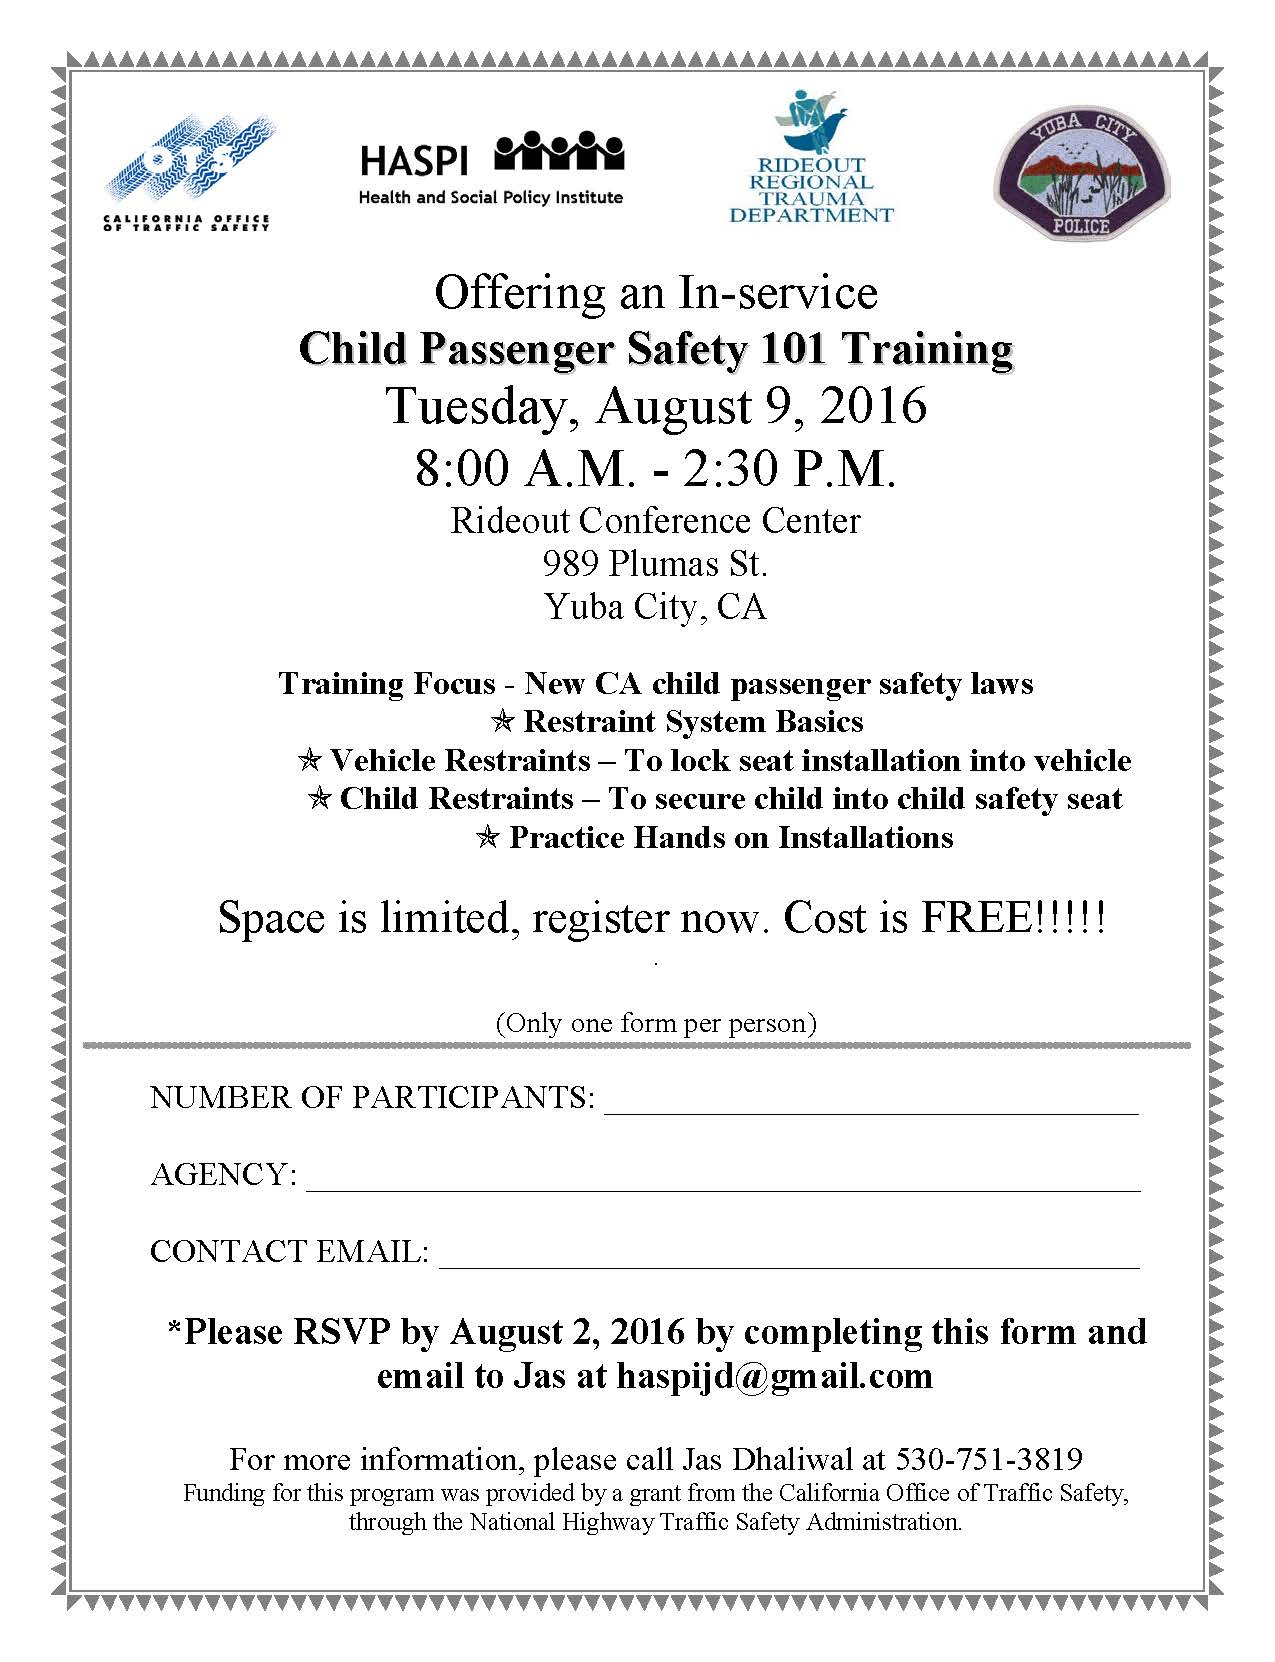 Car Seat August 9 2016 101 training